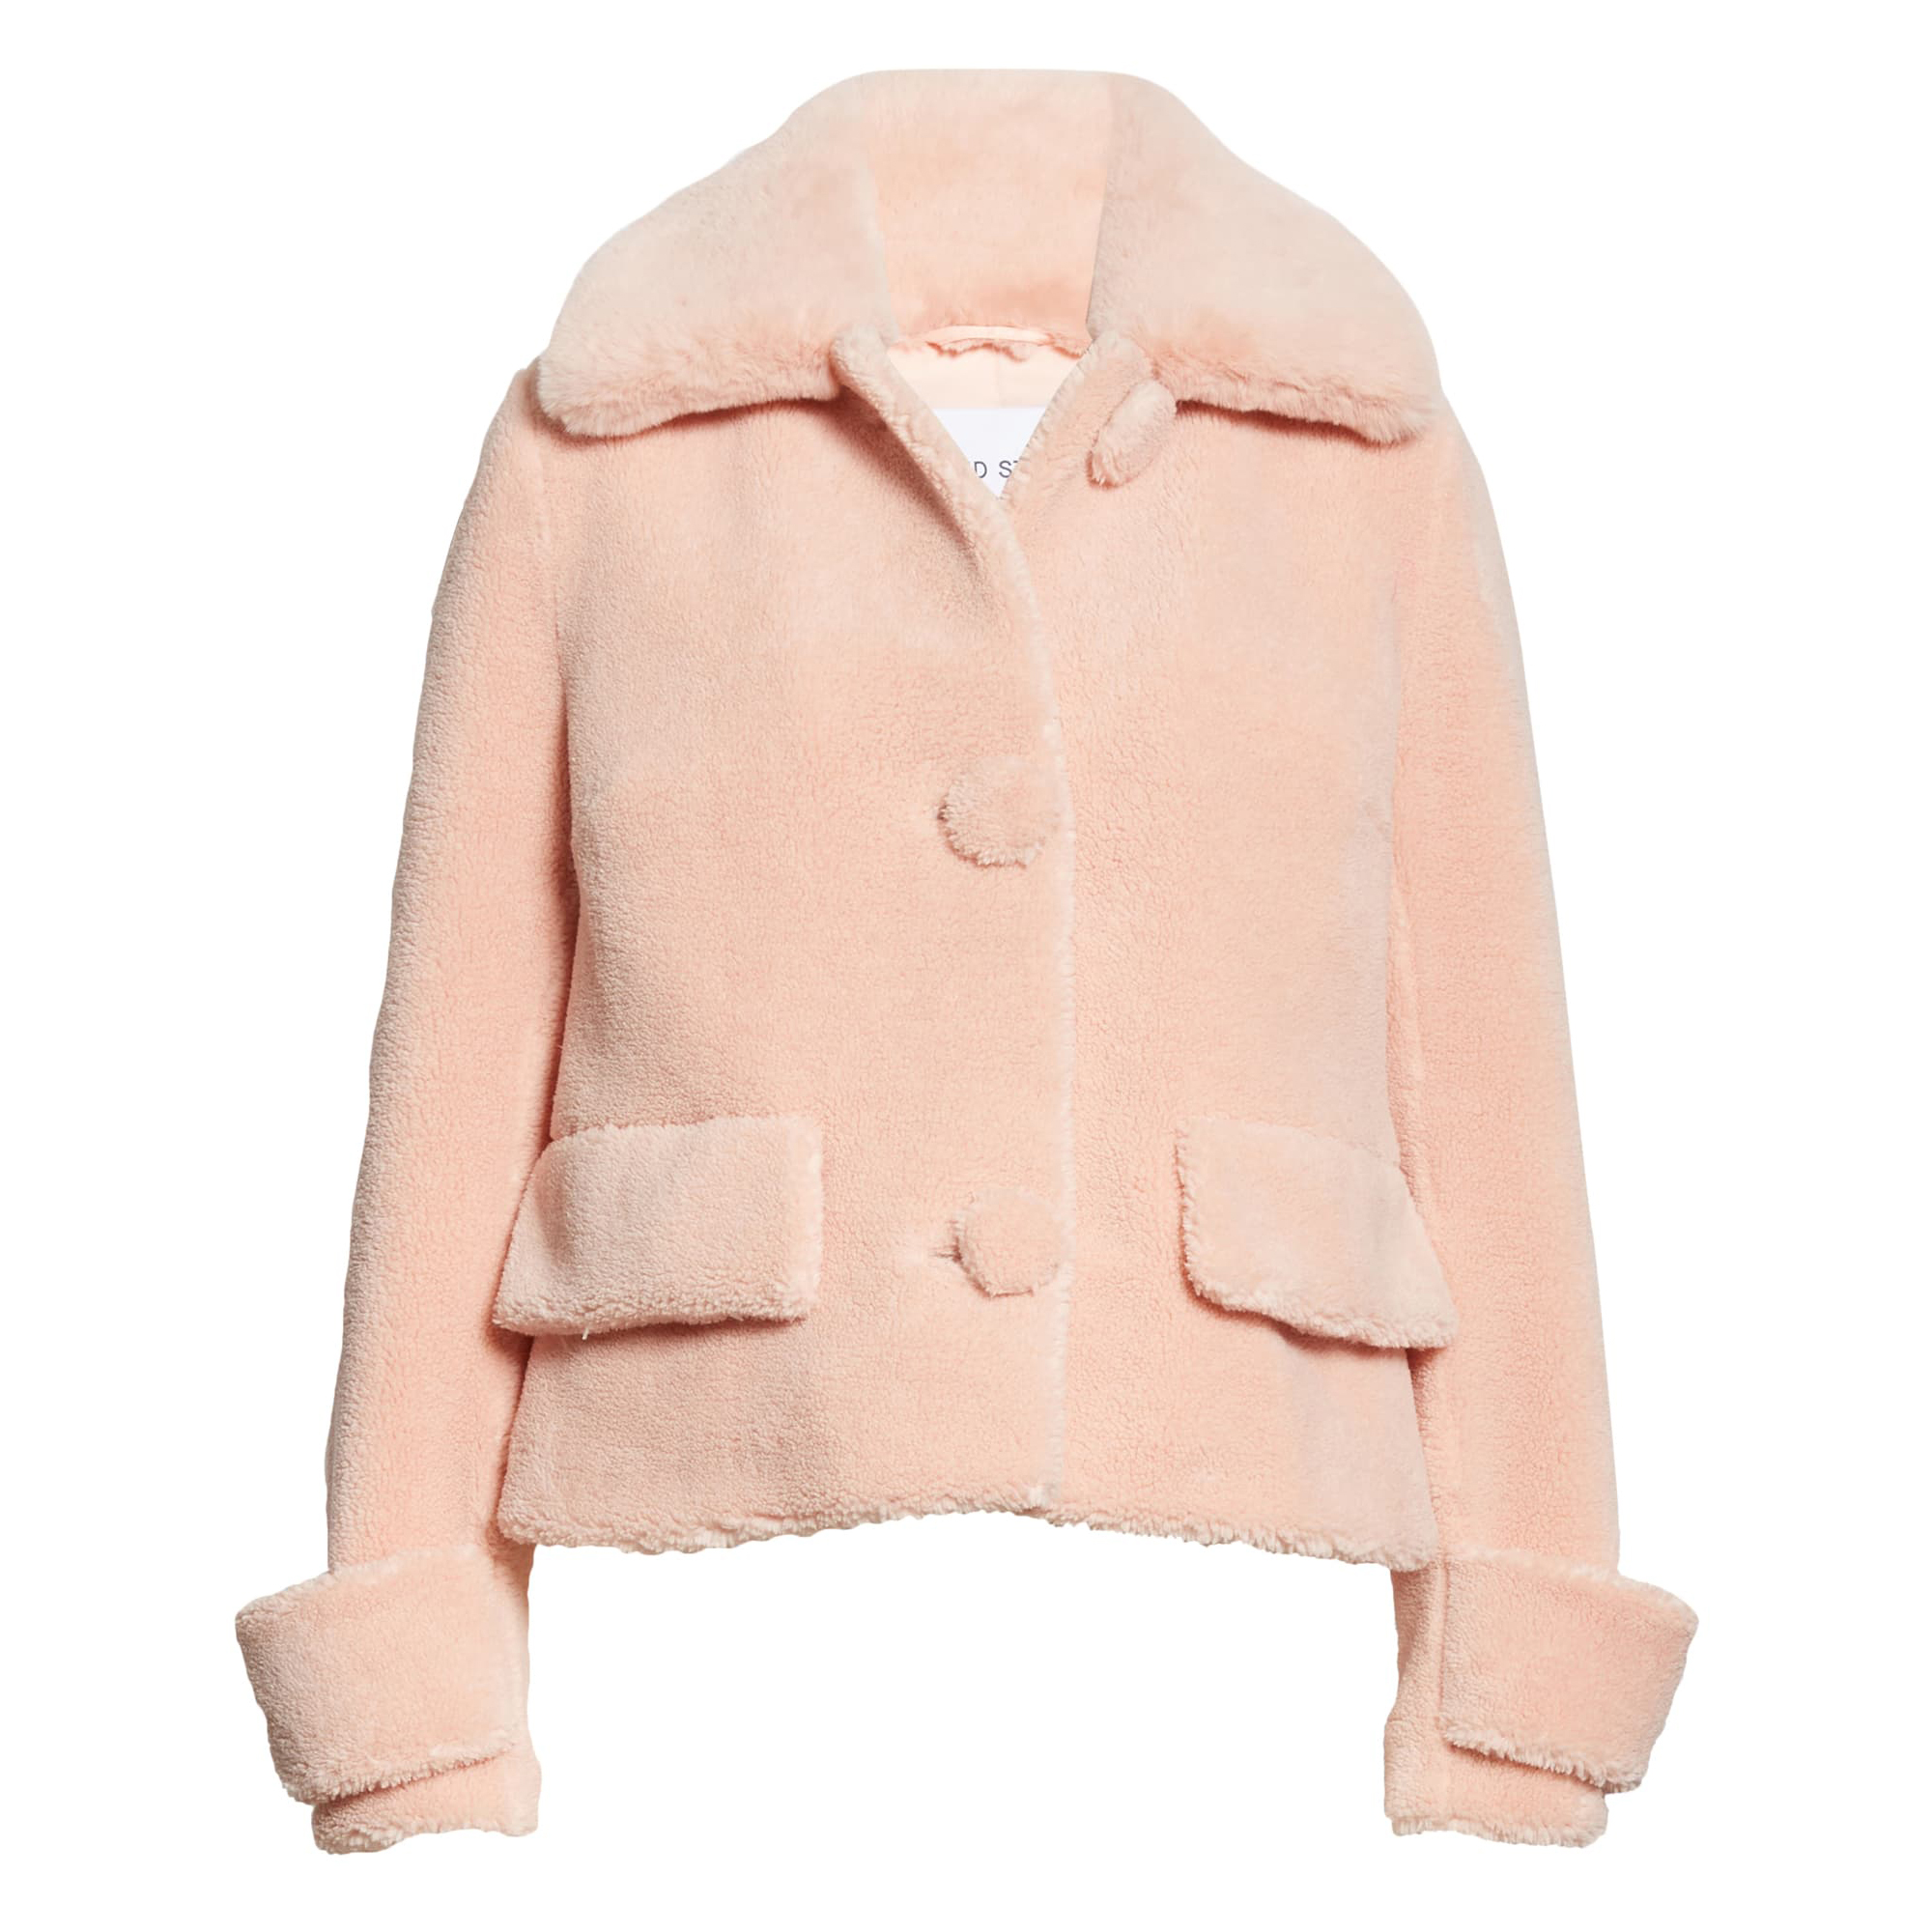 Nordstrom Stand Studio Regina Faux Fur Crop Teddy Jacket in Seashell Pink